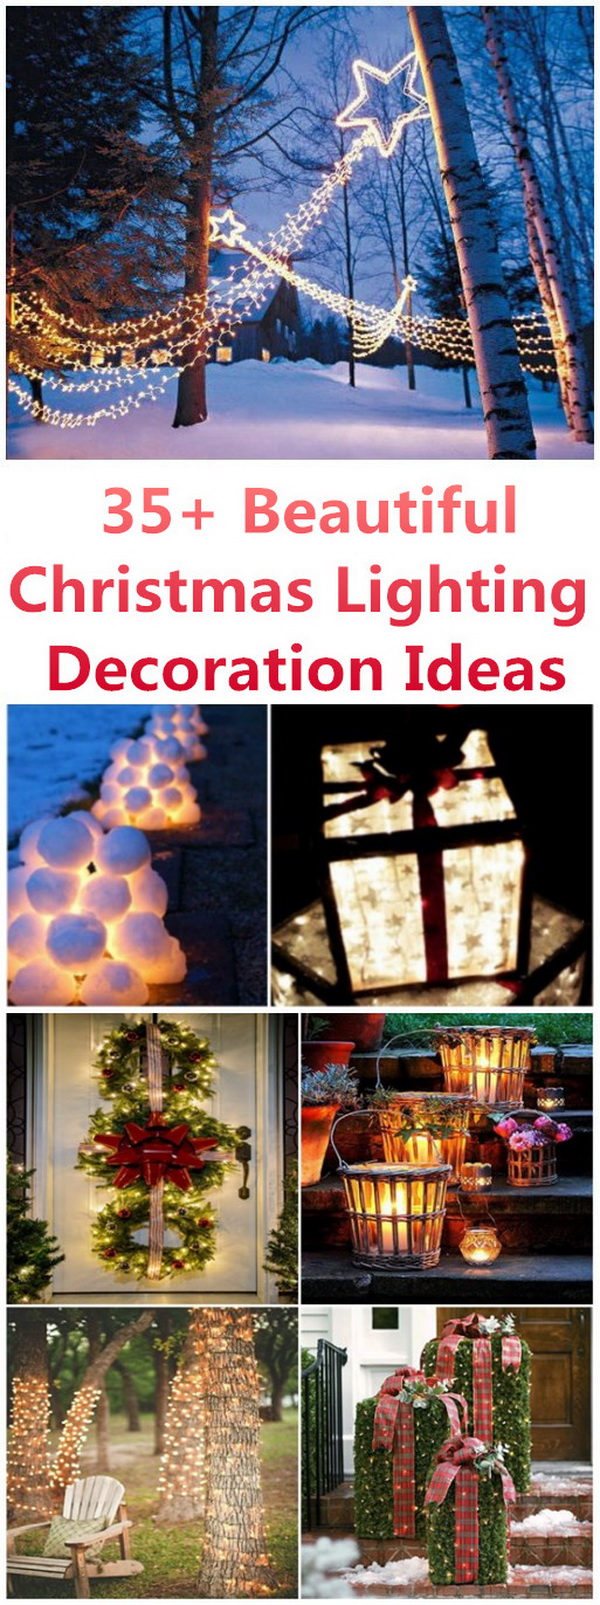 35+ Beautiful Christmas Lighting Decoration Ideas. Christmas is right around the corner. It is time to share your holiday spirit with your home decor. The colorful, sparkling and twinkling lights on the walls and edges of a house bring a festive look to Christmas decorations and make your home look like a palace! Electric string or fairy lights can add a romantic, festive and warm mood to our space or occasions and create a magical scene for Christmas!